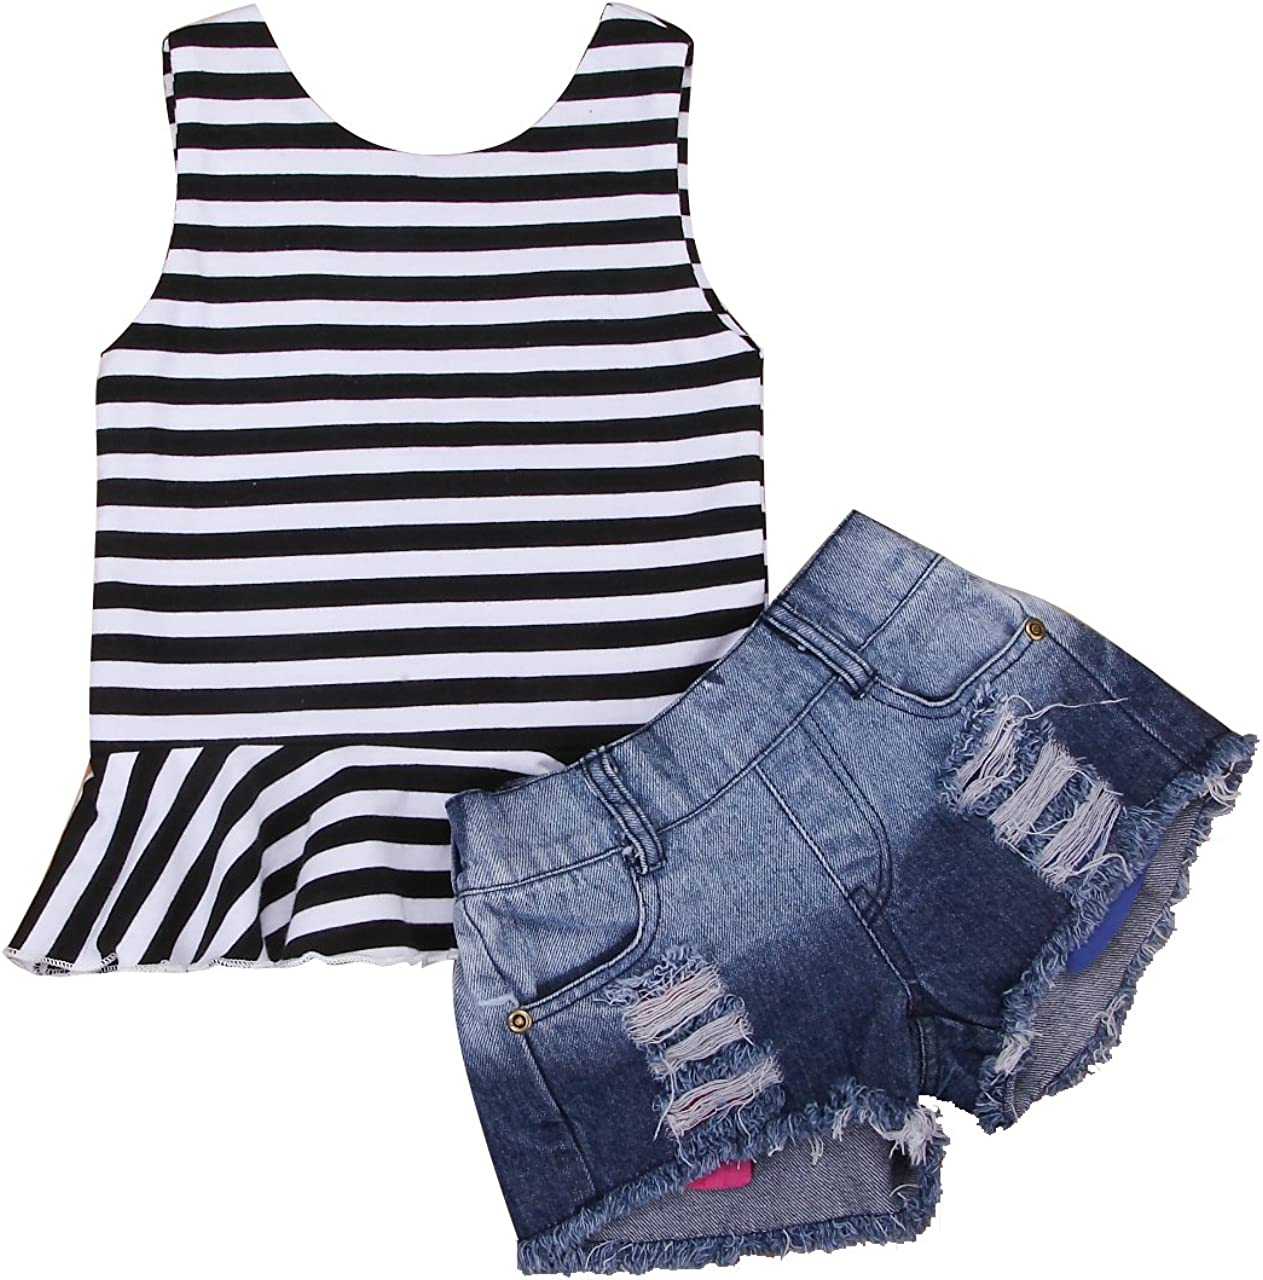 Summe 2Pcs Toddler Kids Baby Girls Outfits Sleeveless Stripe Backless Tops Denim Short Pants Jean Clothes